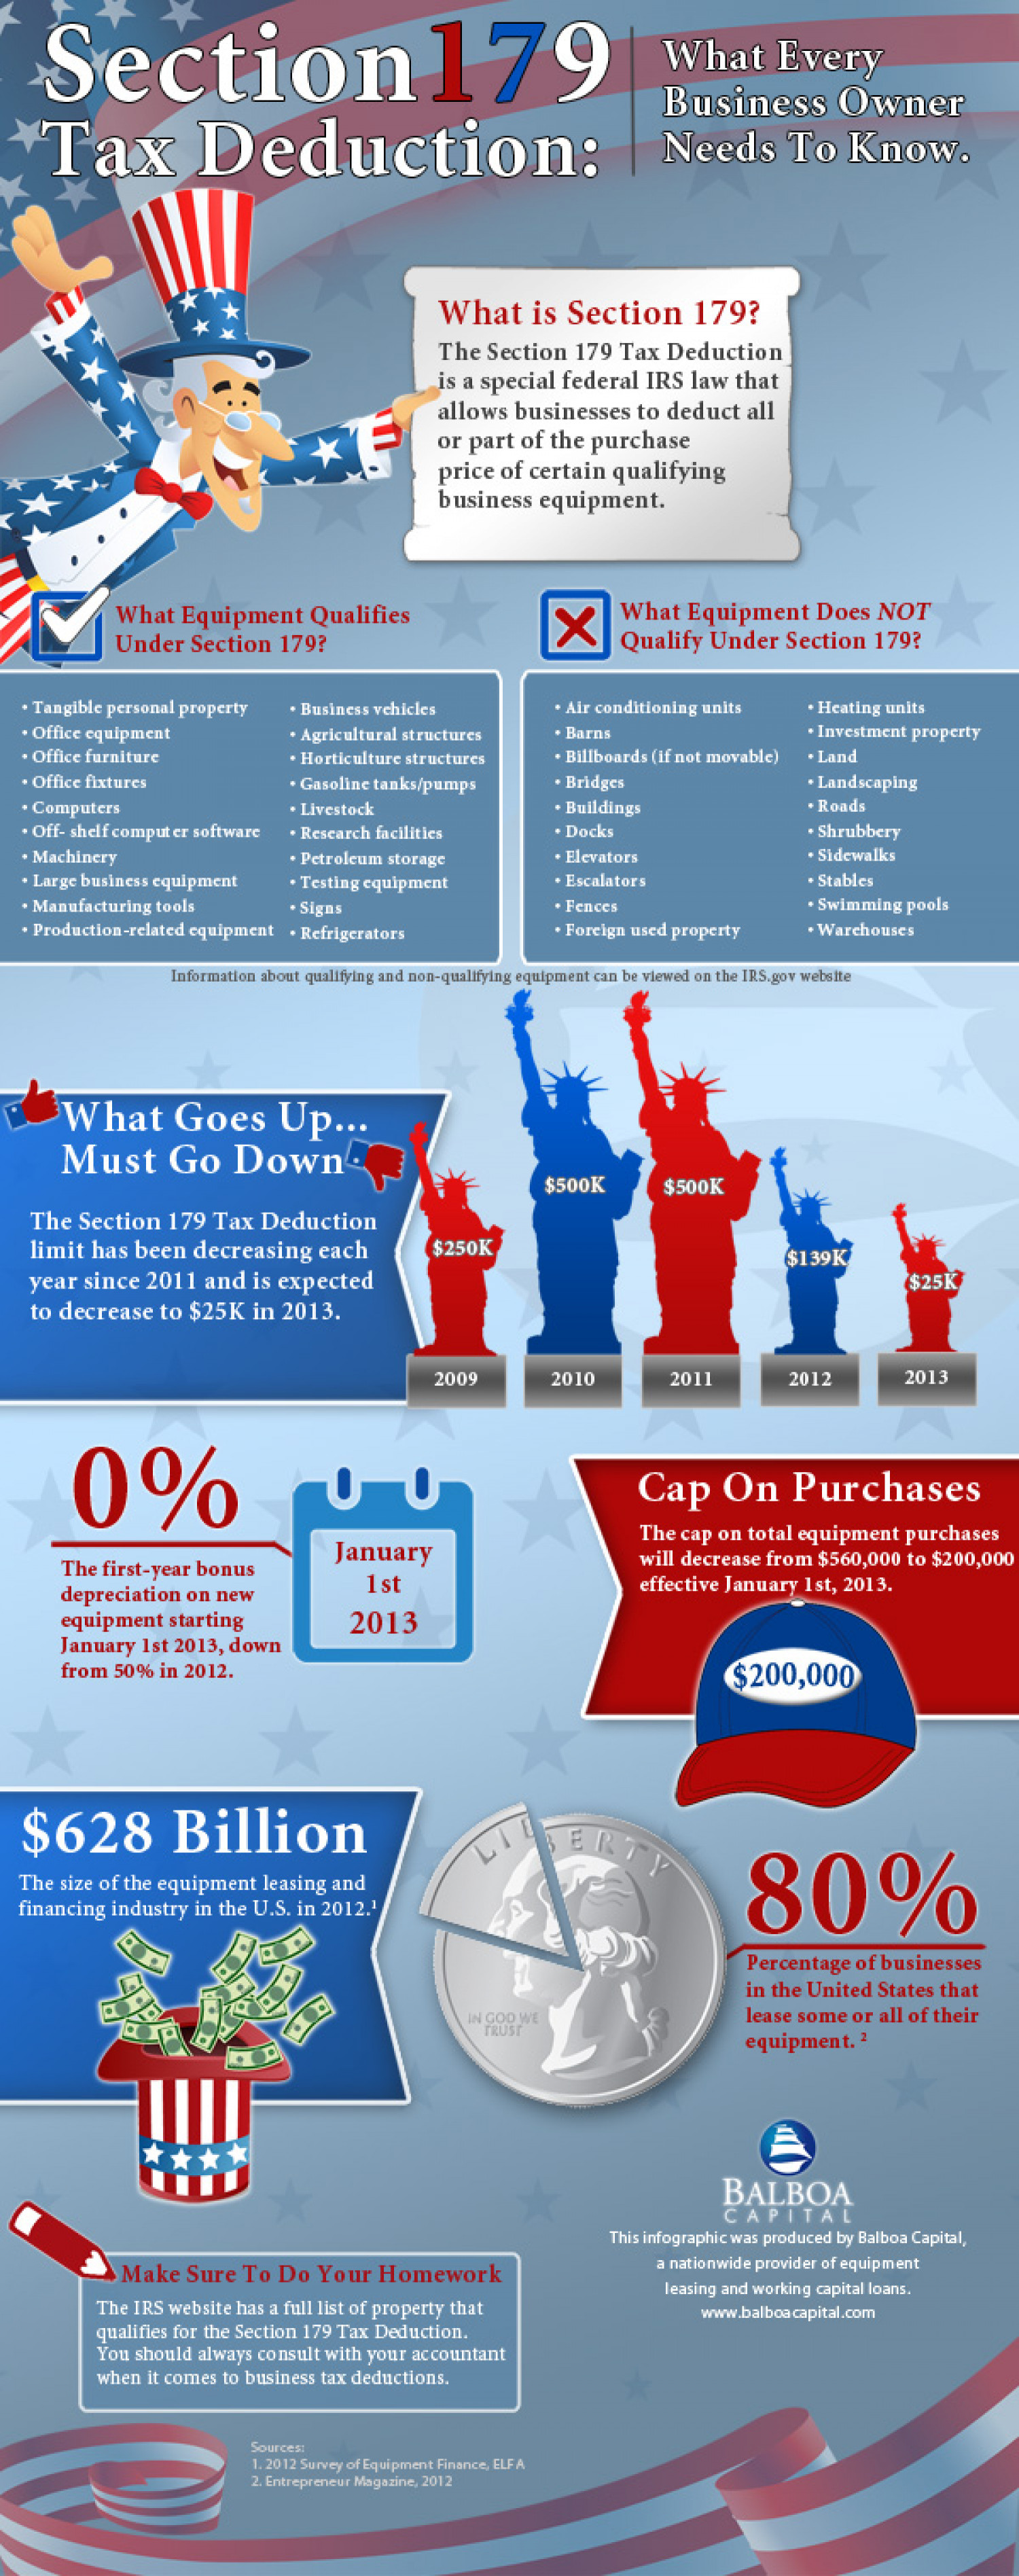 Section 179 Tax Deduction Infographic Infographic